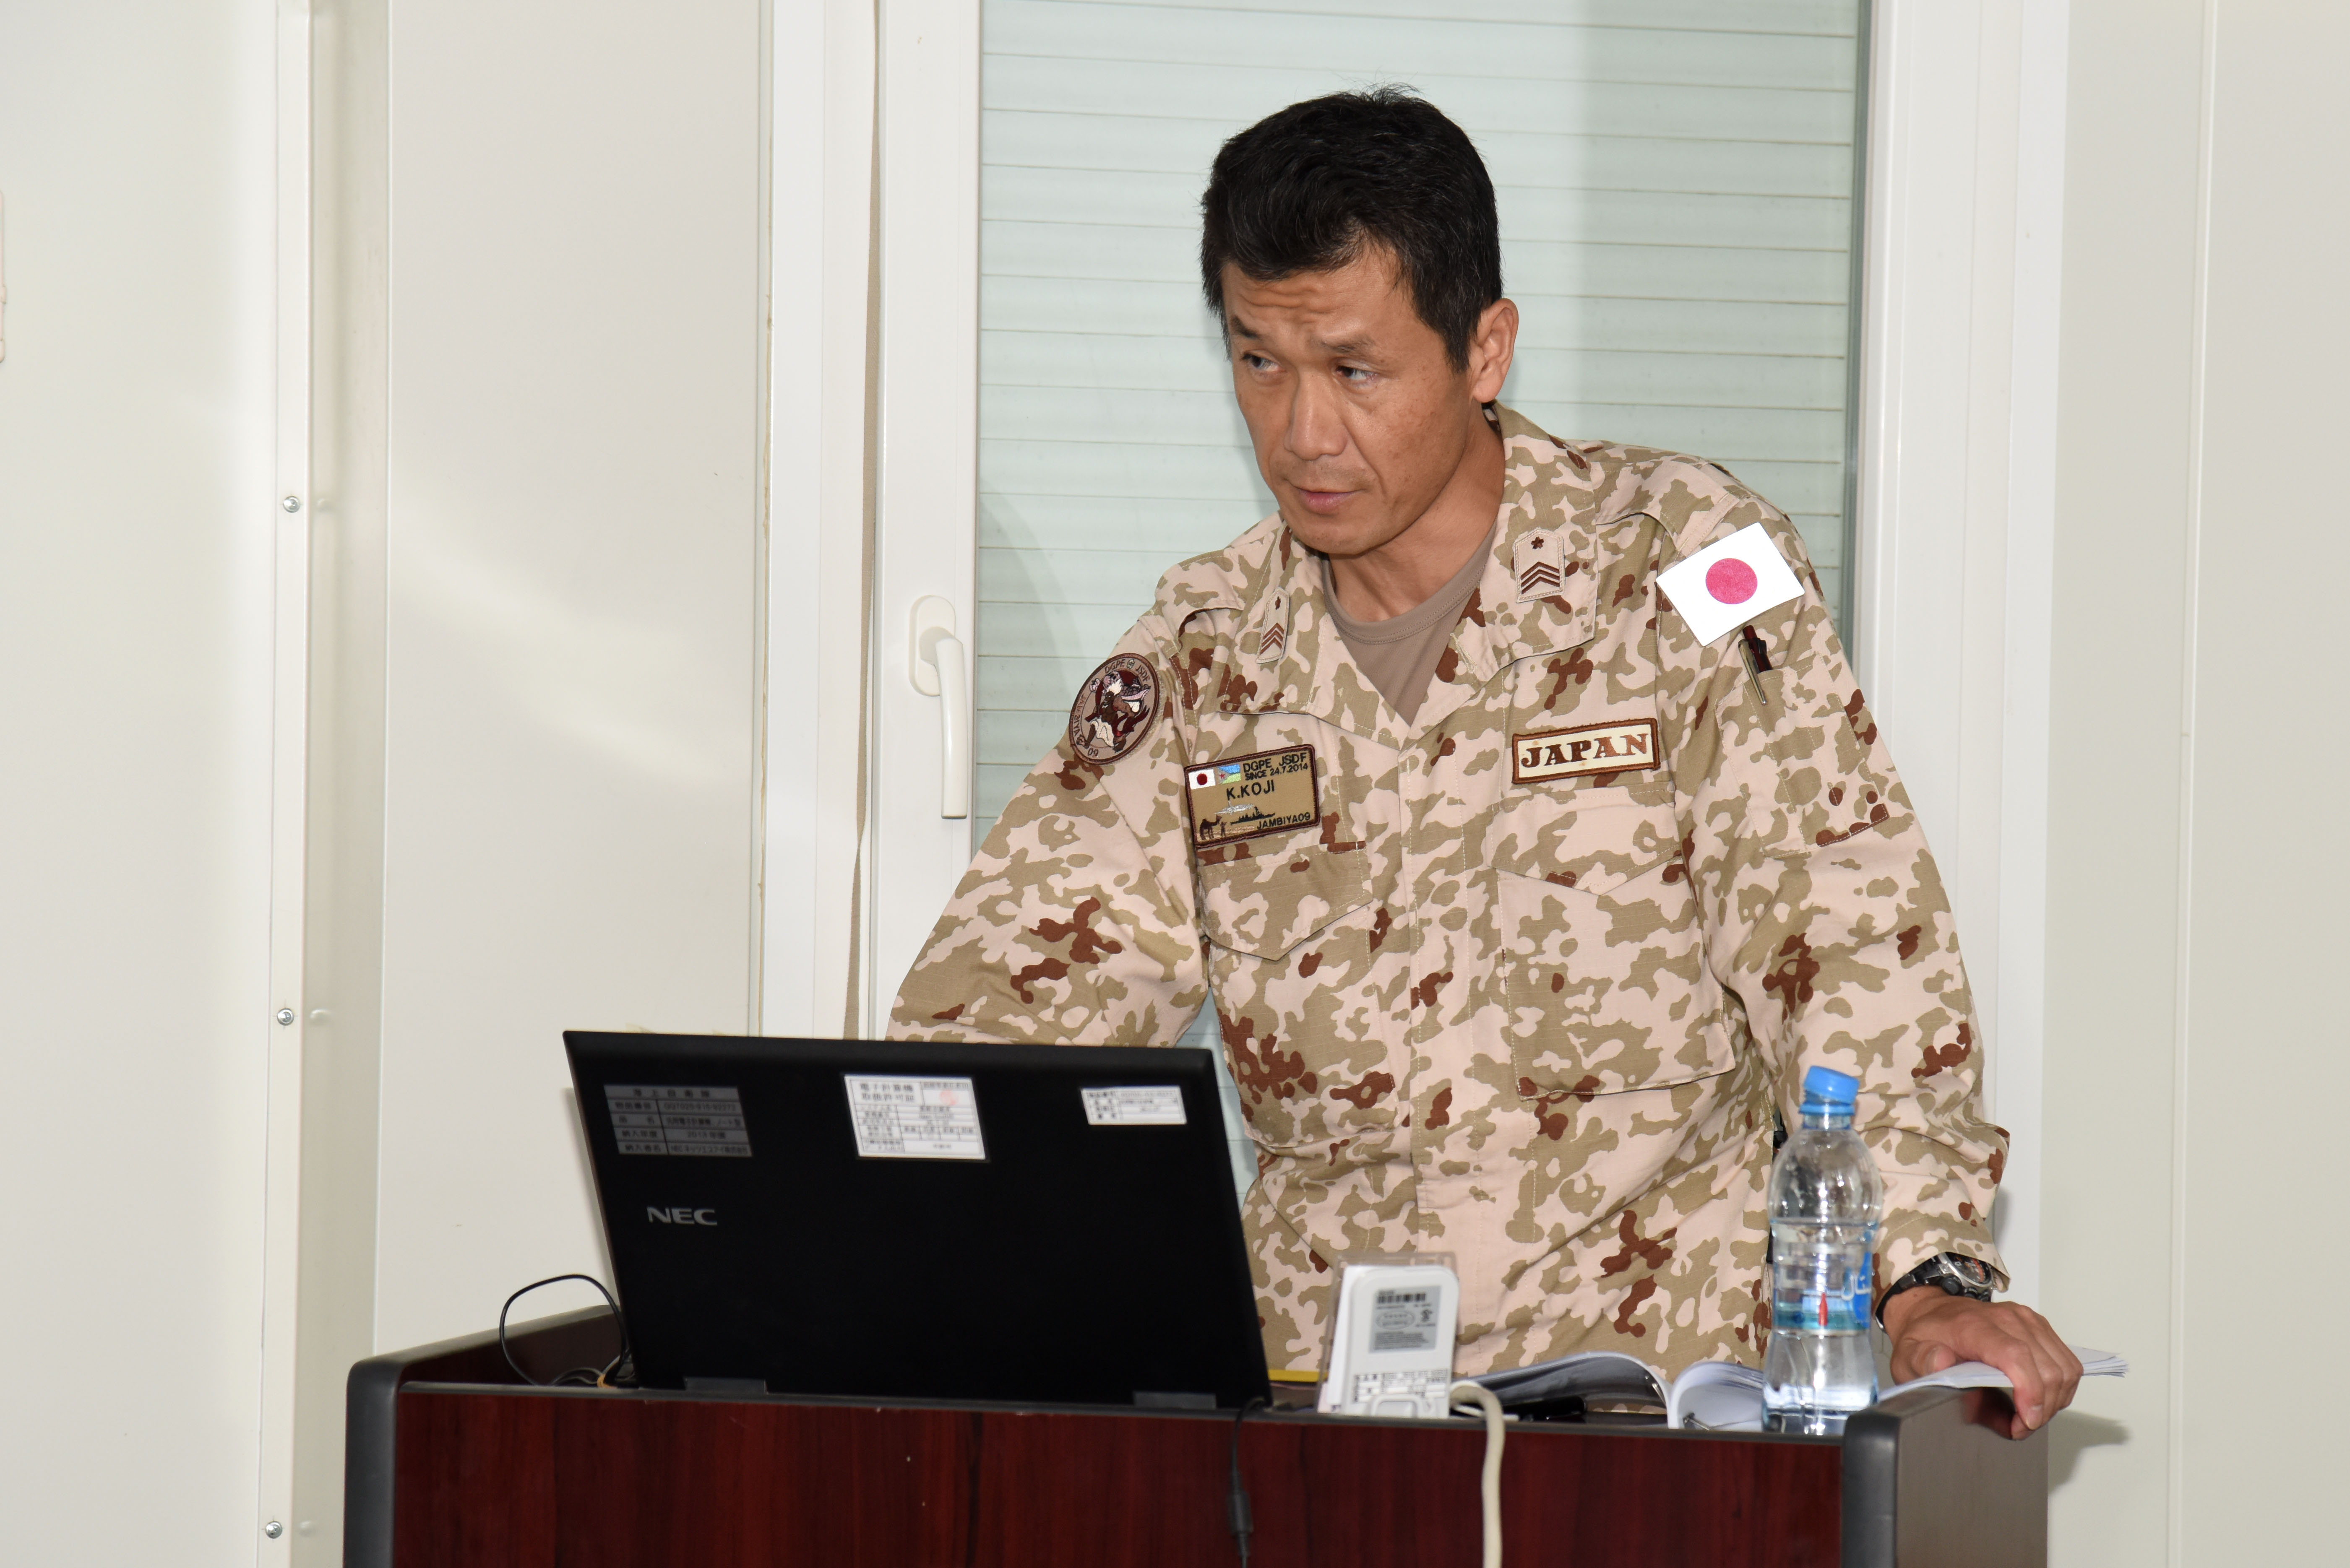 Japan Ground Self-Defense Force Master Sgt. Koji Urabe speaks about the Japanese mission in Djibouti to attendees of the Joint Forces Senior Enlisted Professional Development Course at the Japan base in Djibouti, Nov. 24, 2015. Military members from the U.S. and Djibouti learned about Japan's role in reducing piracy in the Gulf of Aden. (U.S. Air Force photo by Staff Sgt. Victoria Sneed)